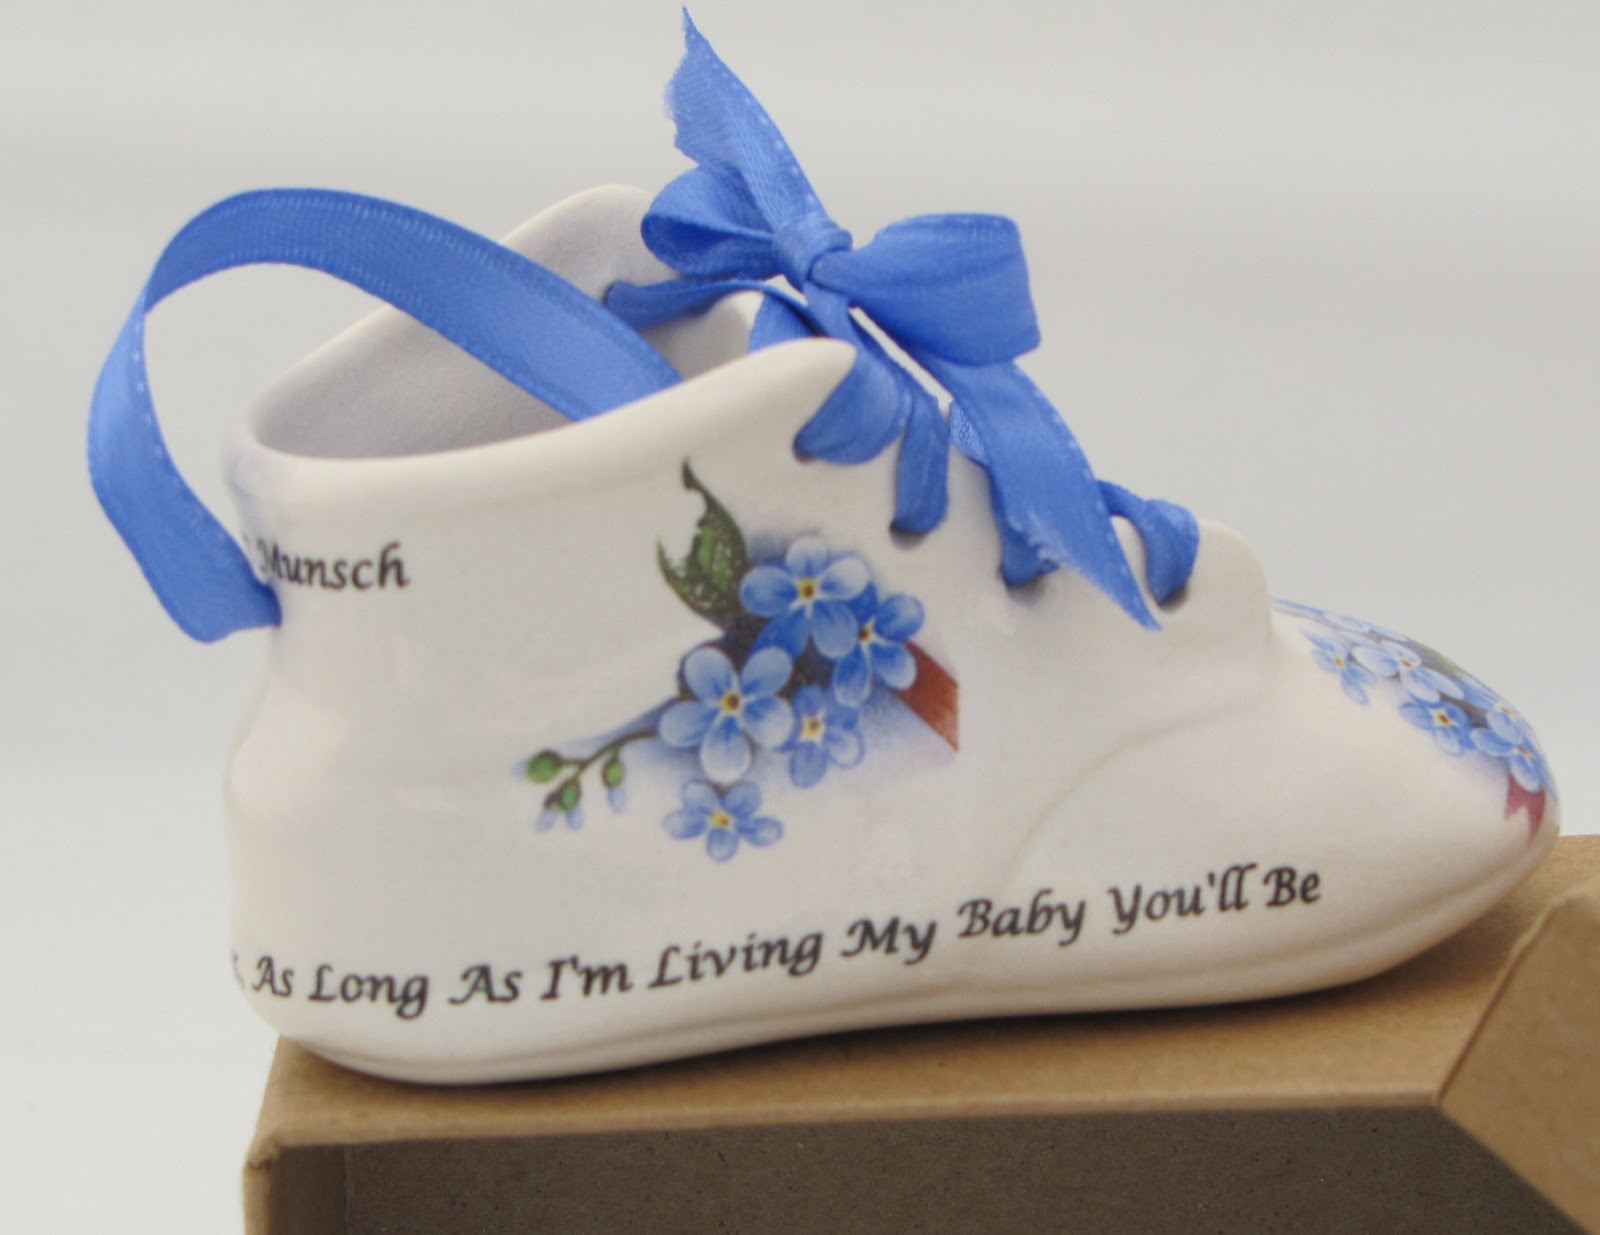 Janiscraft Personalized Porcelain Baby Shoes